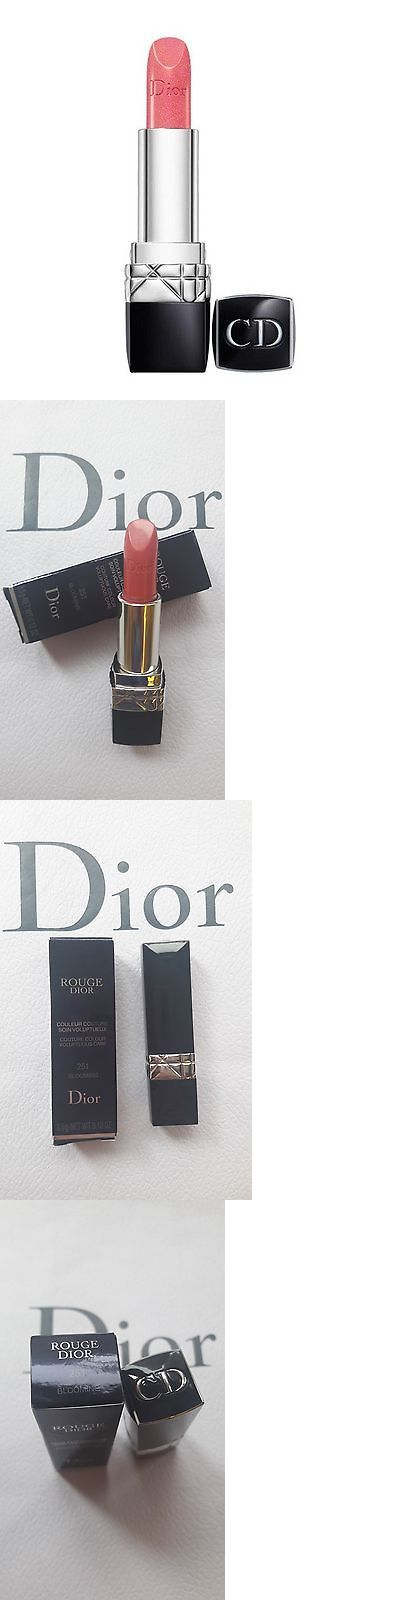 Lipstick Primer: Rouge Dior Couture Colour Voluptous Care 251 Blooming Nib -> BUY IT NOW ONLY: $35.99 on eBay!